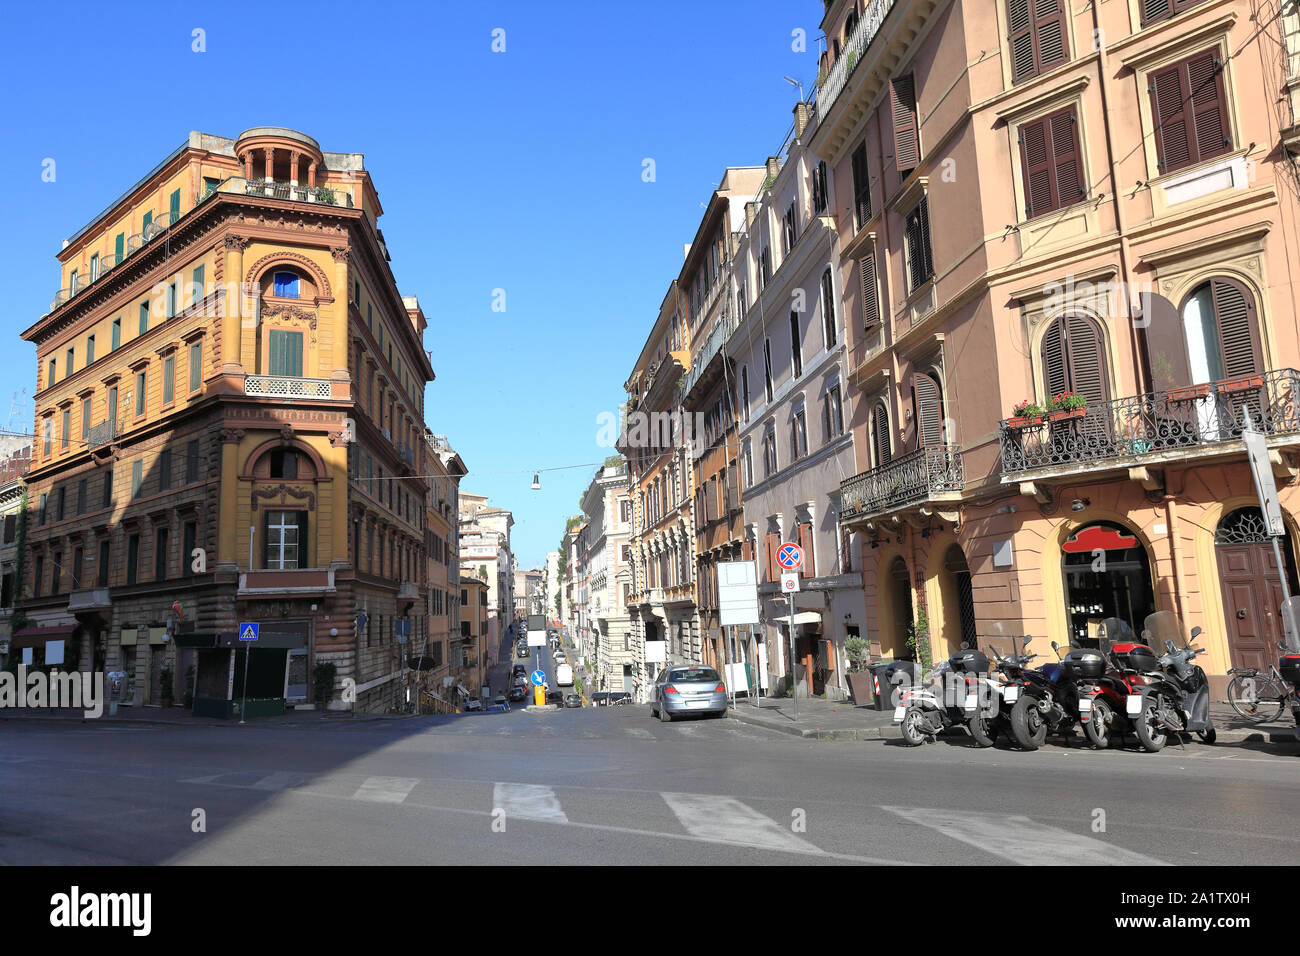 Rome Street, everyday life in the city Stock Photo